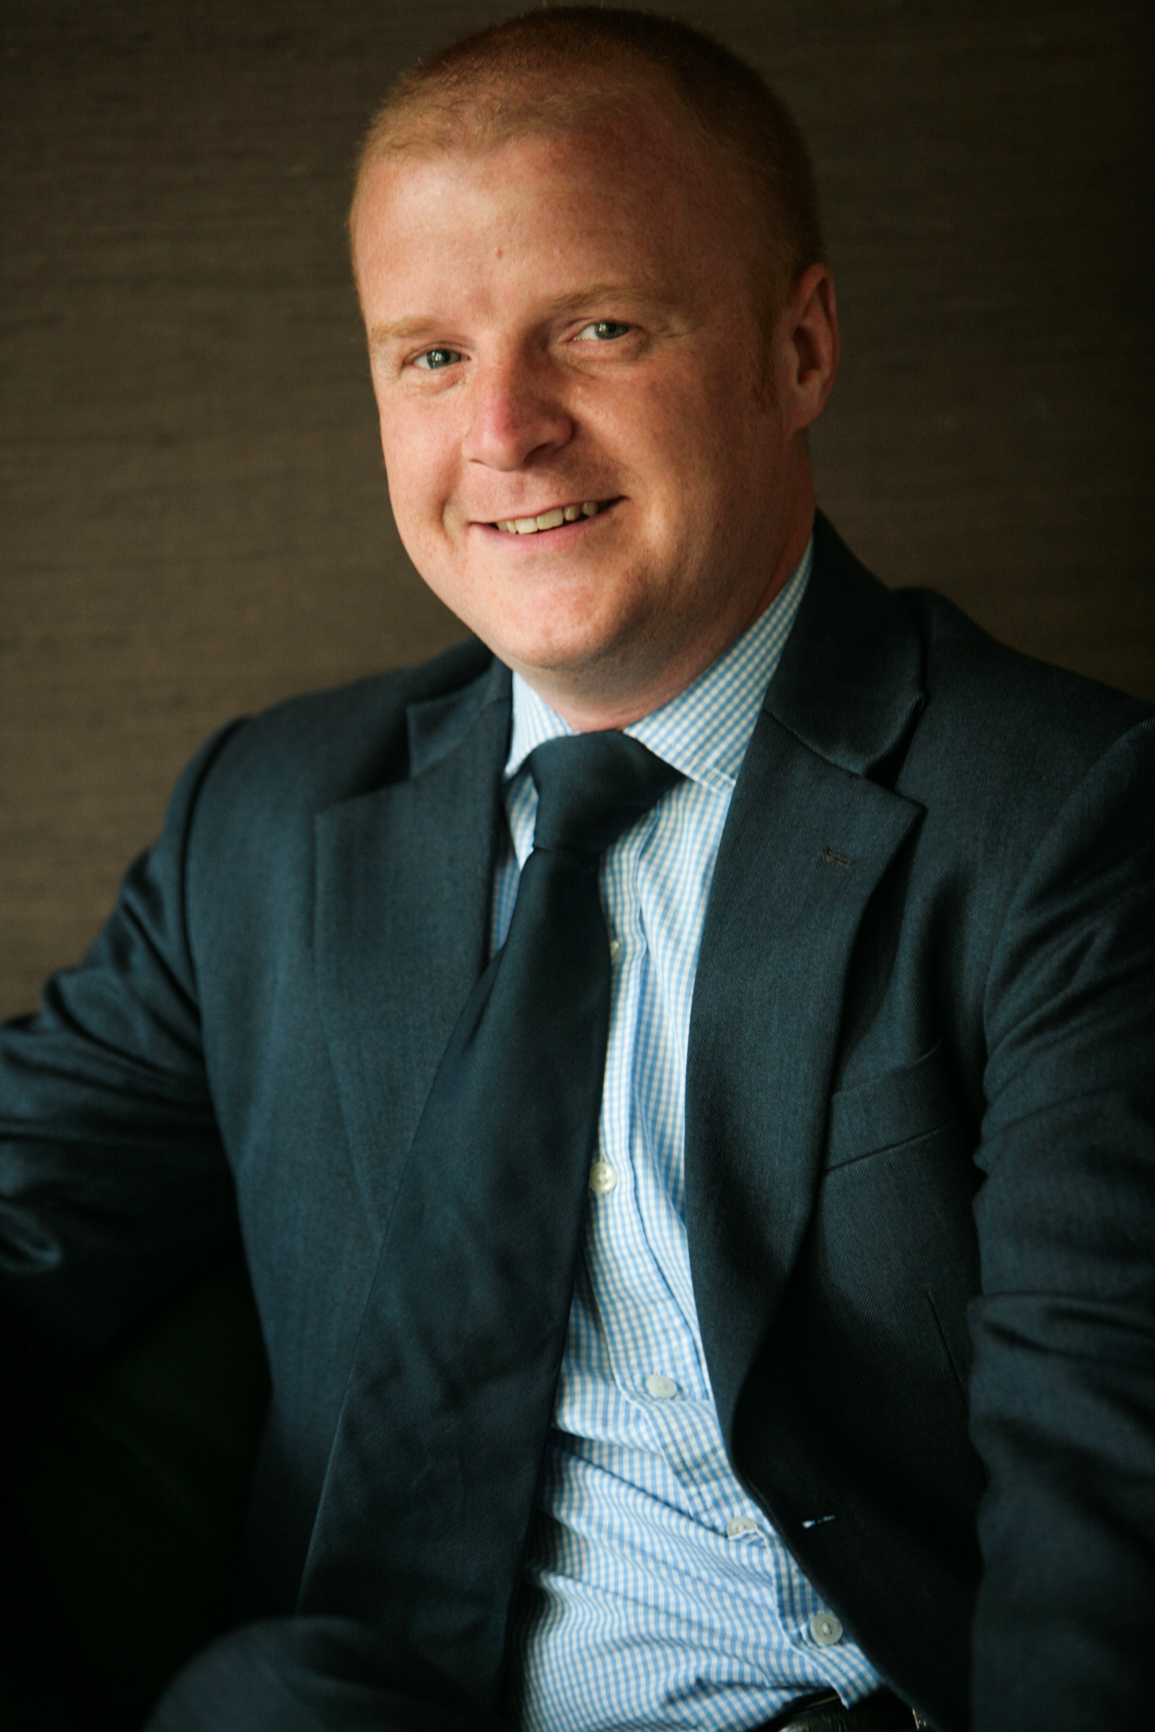 Relaxed headshot of businessman from corporate web site campaign